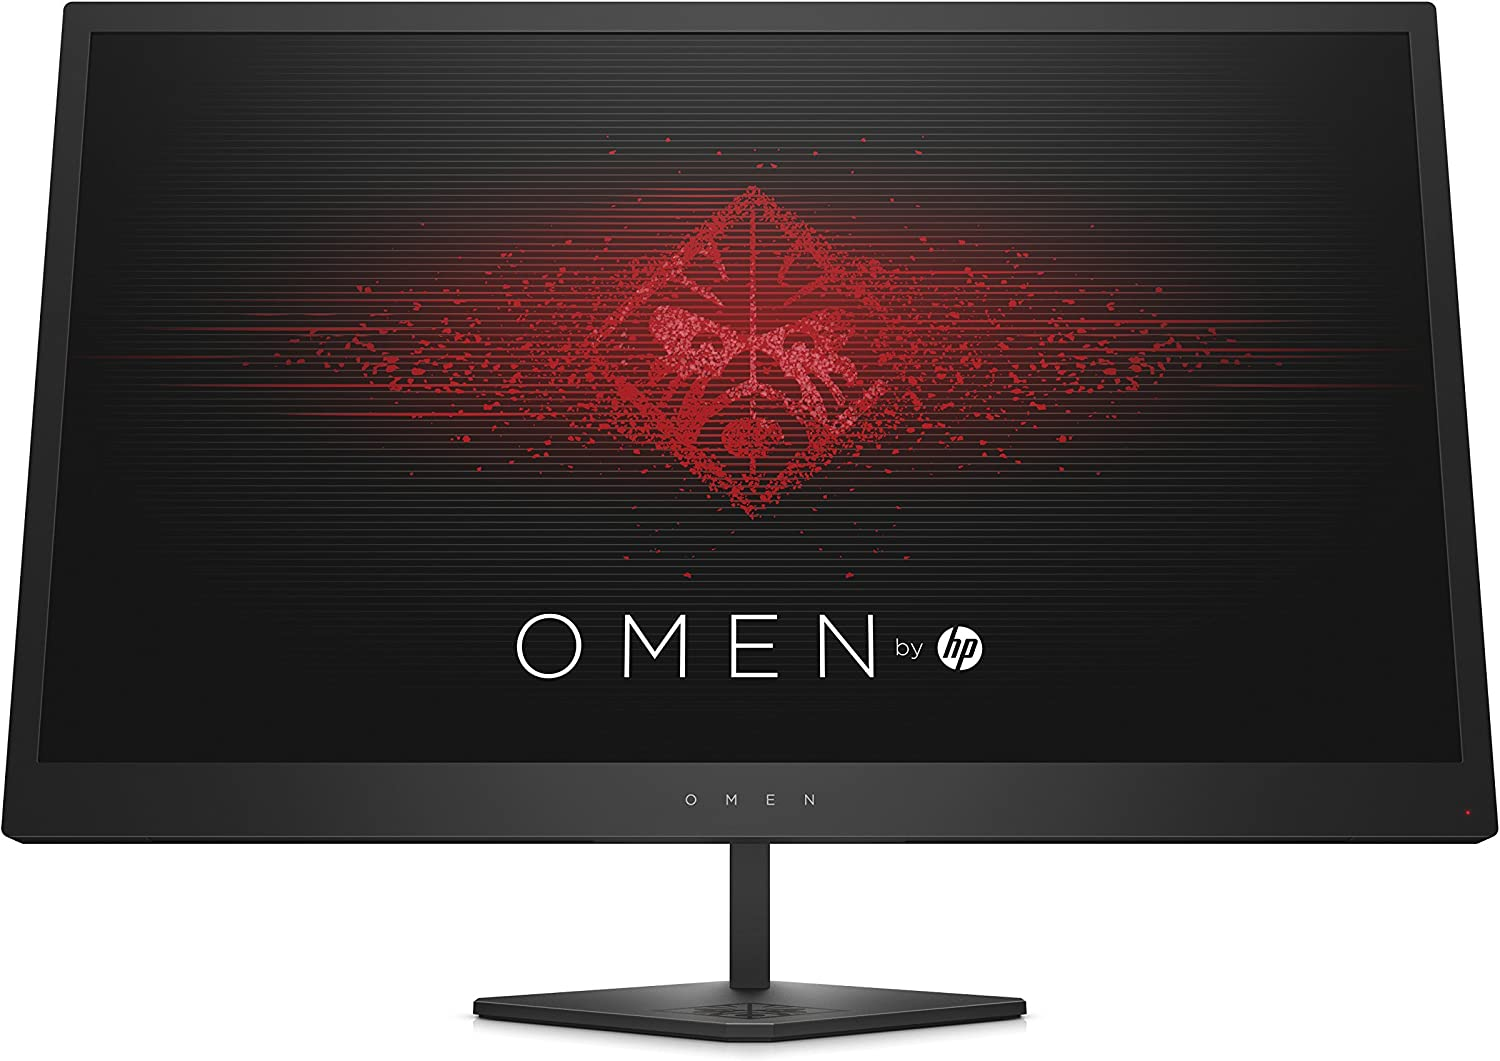 Omen by HP 25 monitor